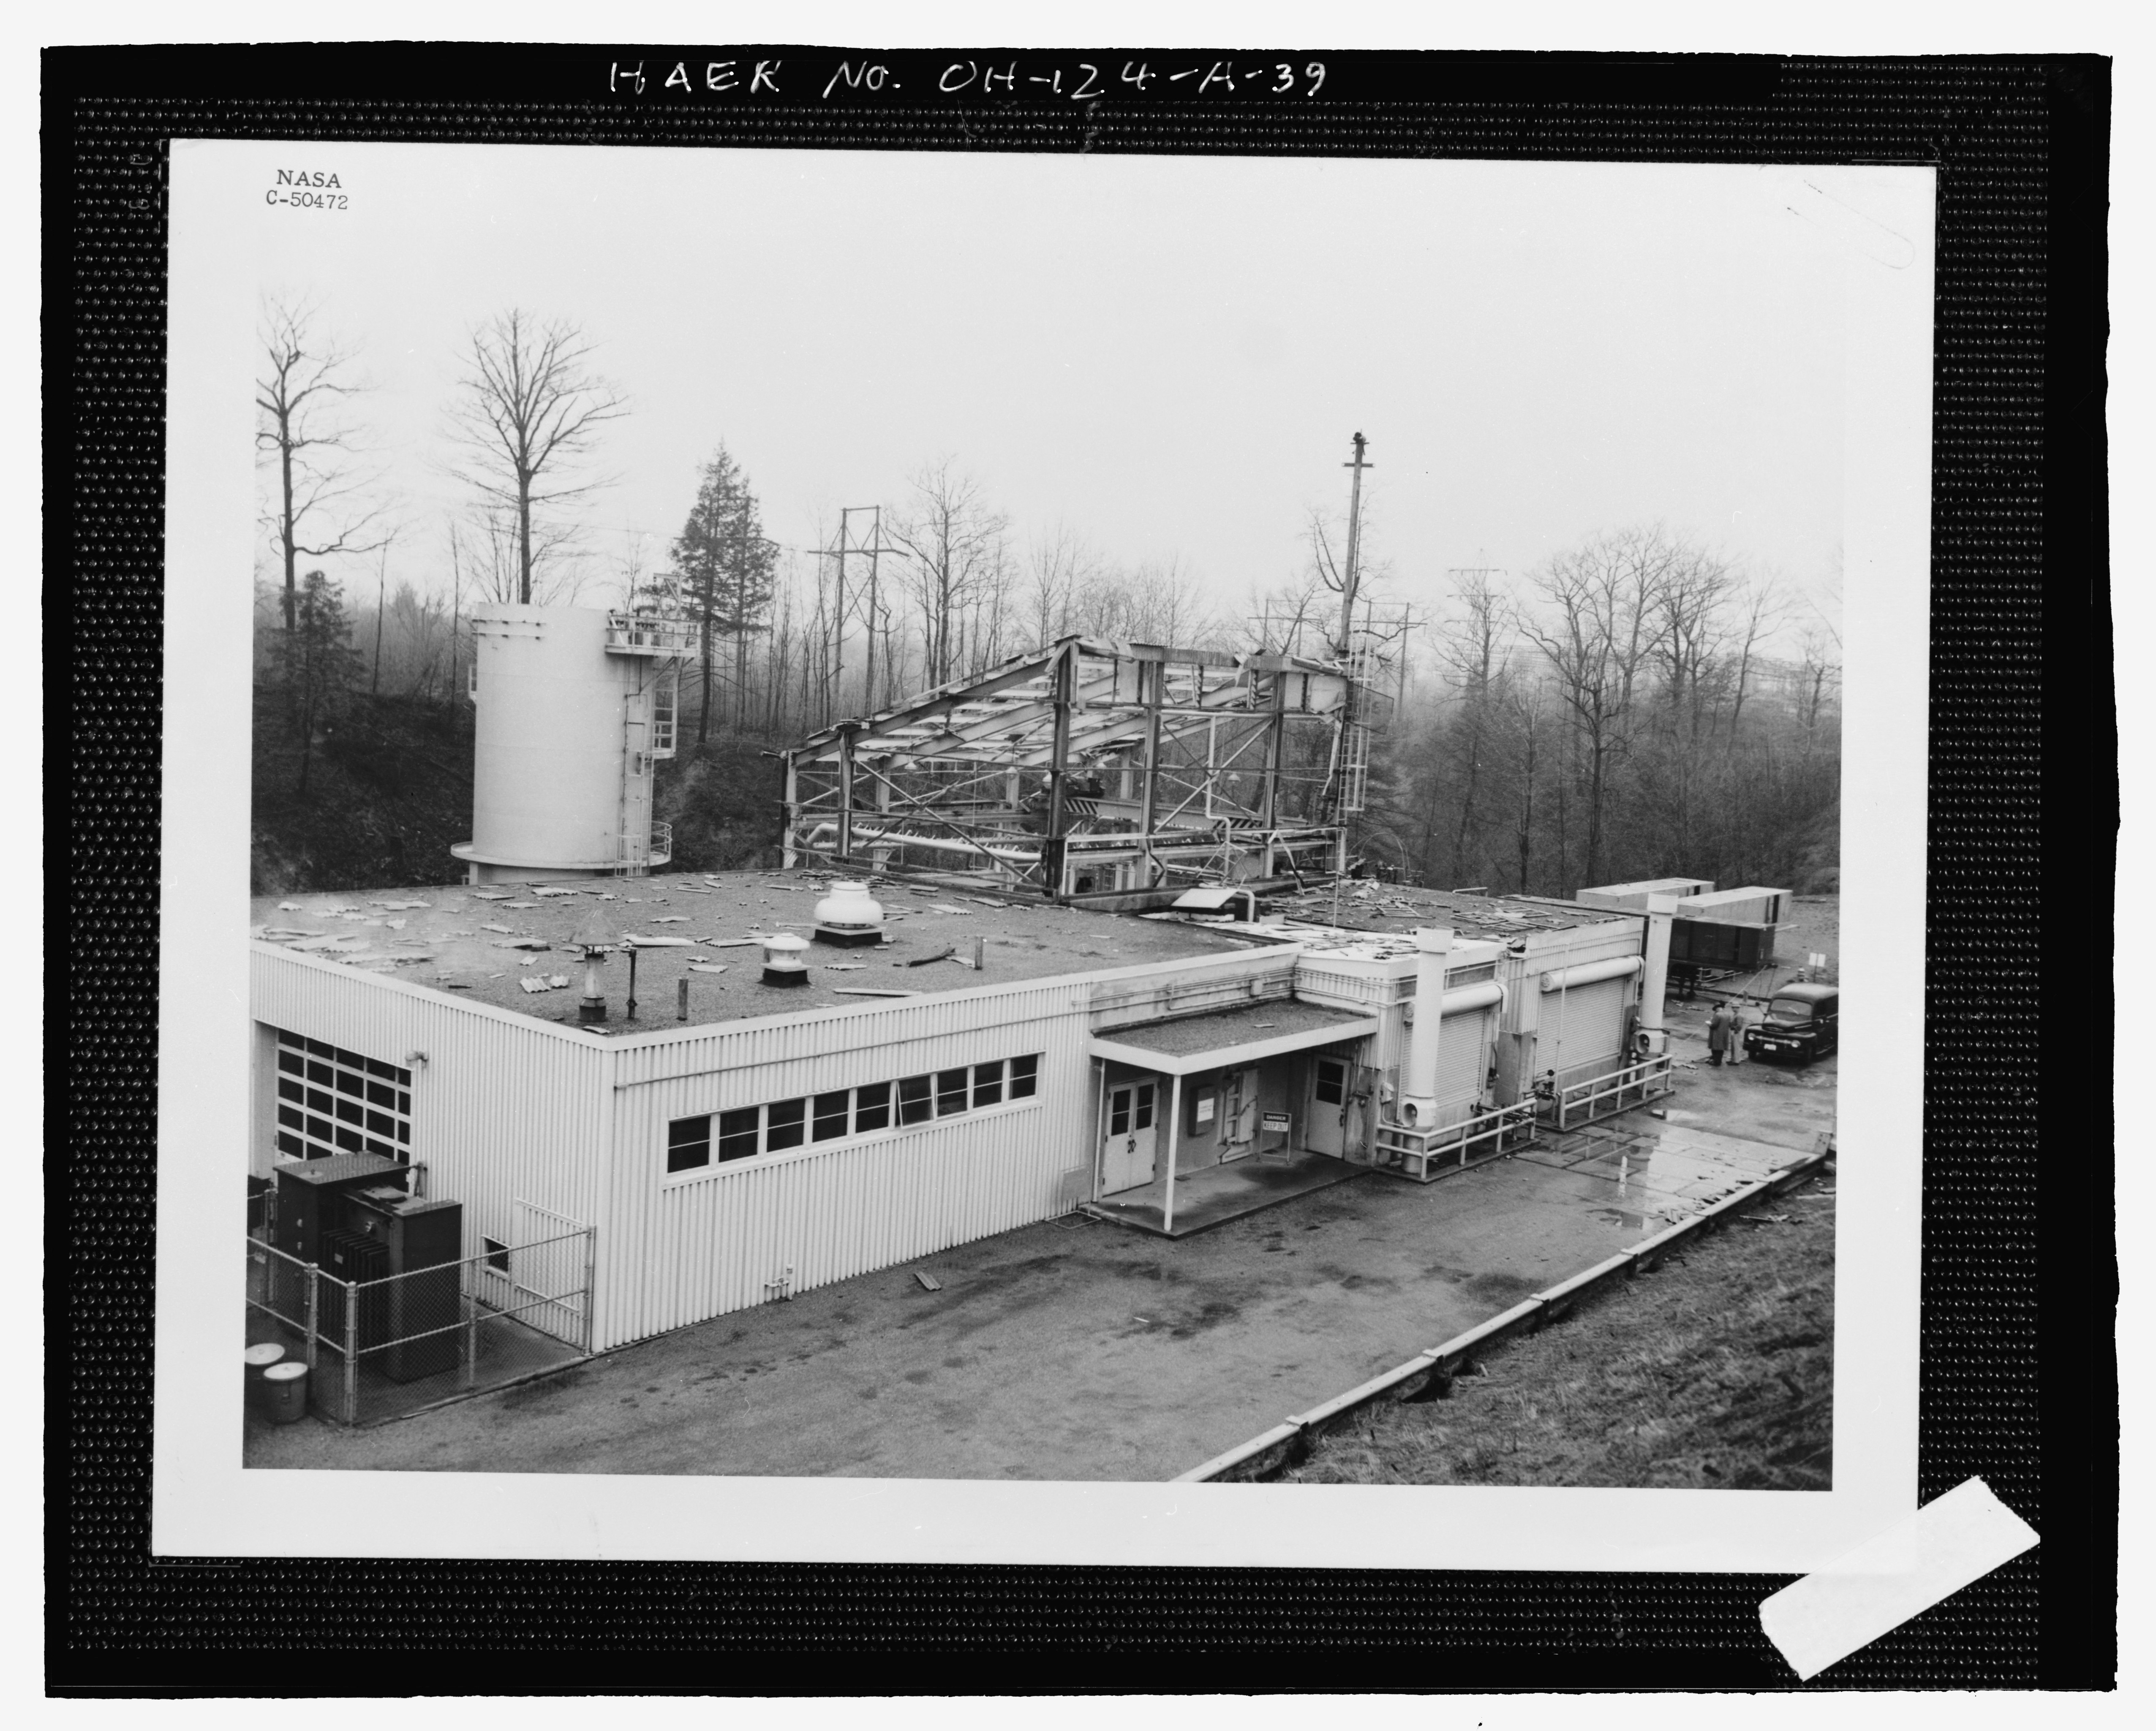 File:Historic photo of Building 202 test cell interior ...